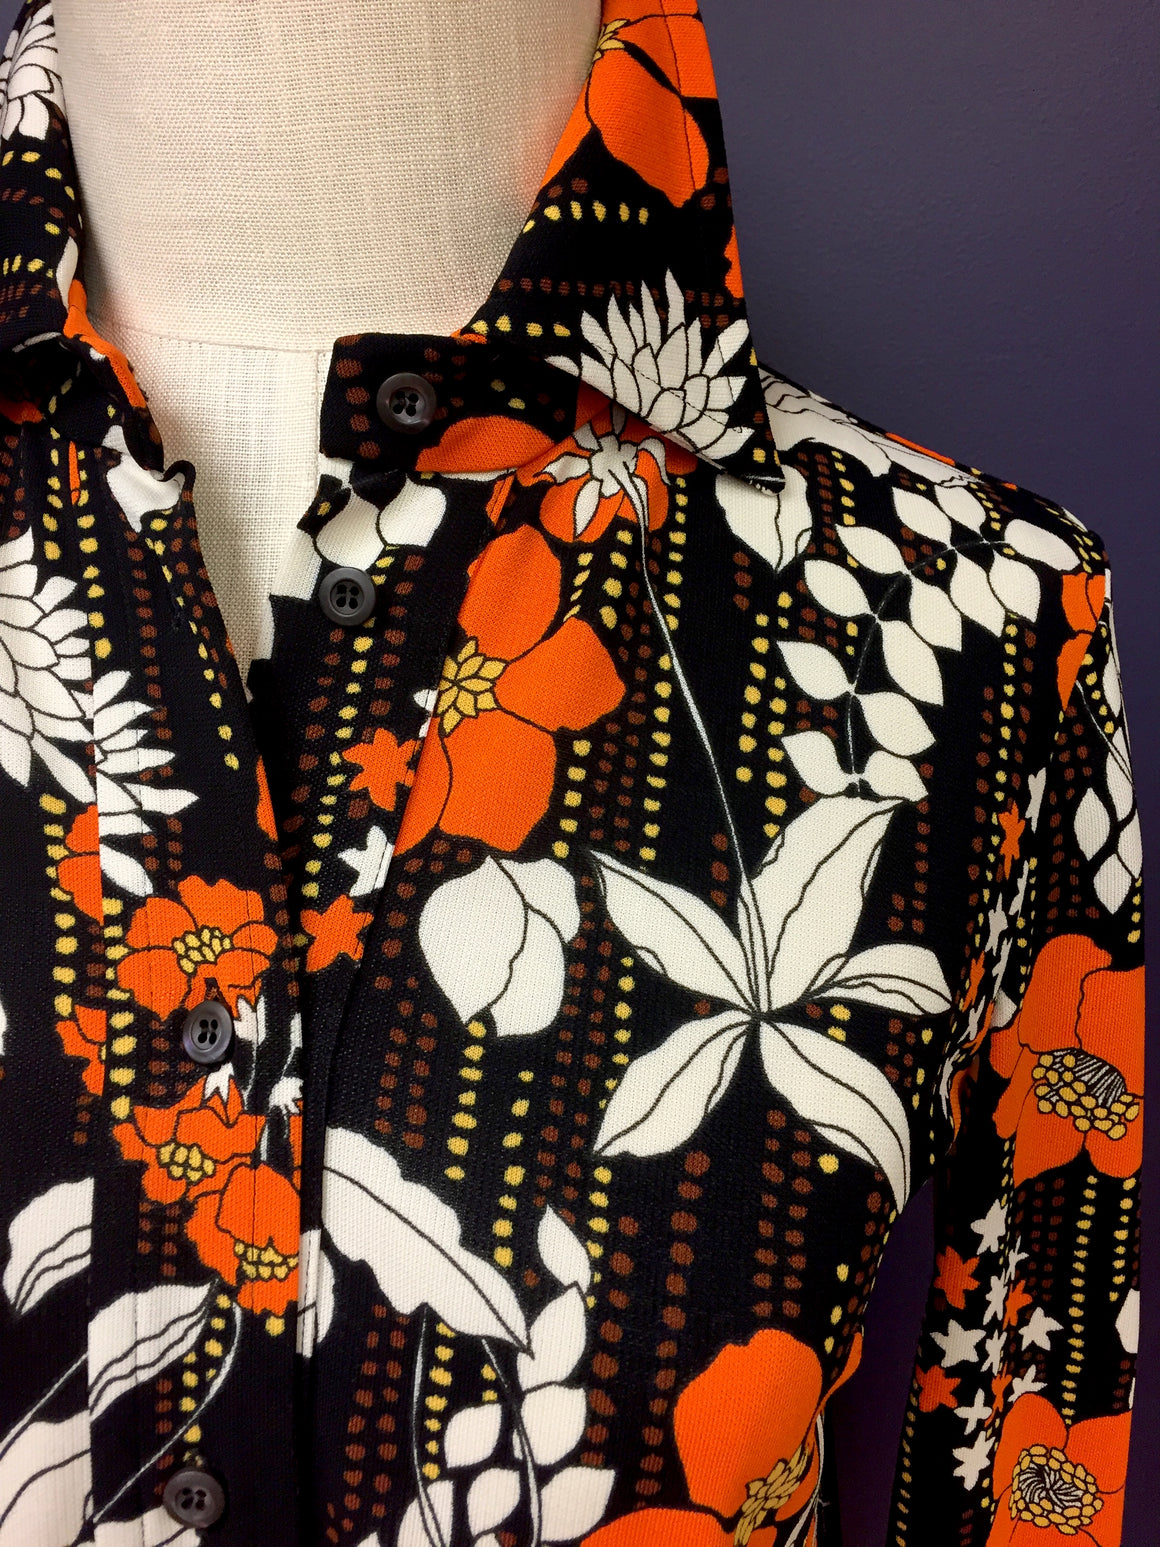 PRADA  Black/Multi-color Floral-Print Viscose Blouse Shirt  Size: IT 38/US 4